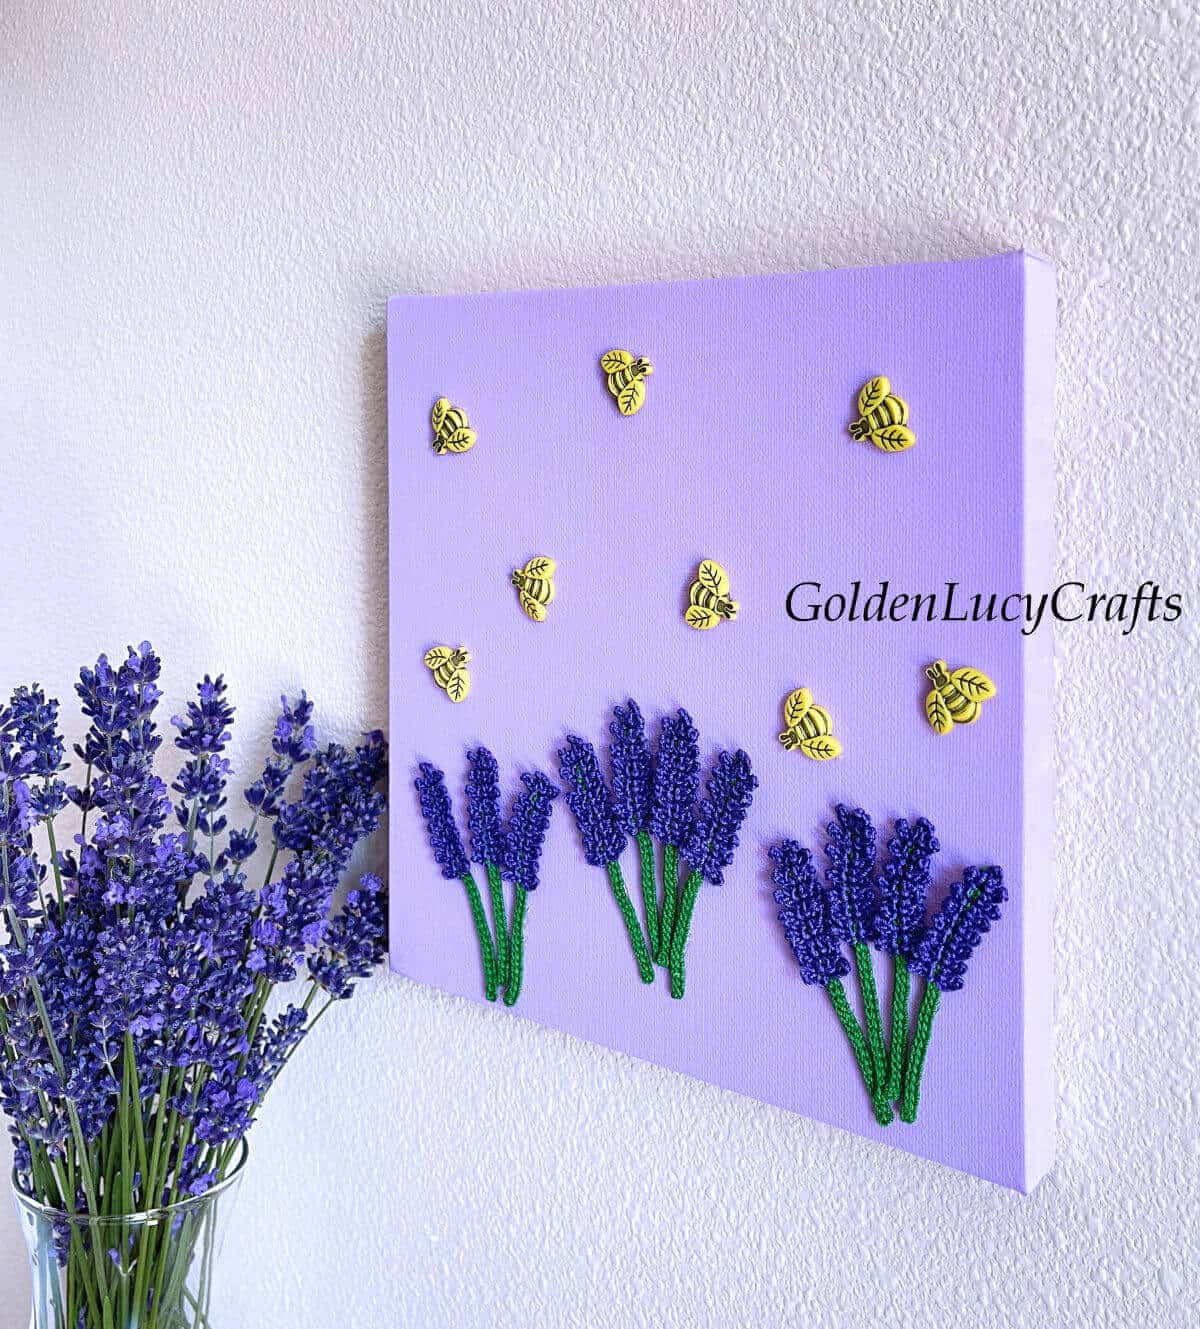 Wall art lavender and bees hanging on the wall, lavender in the vase next to it.